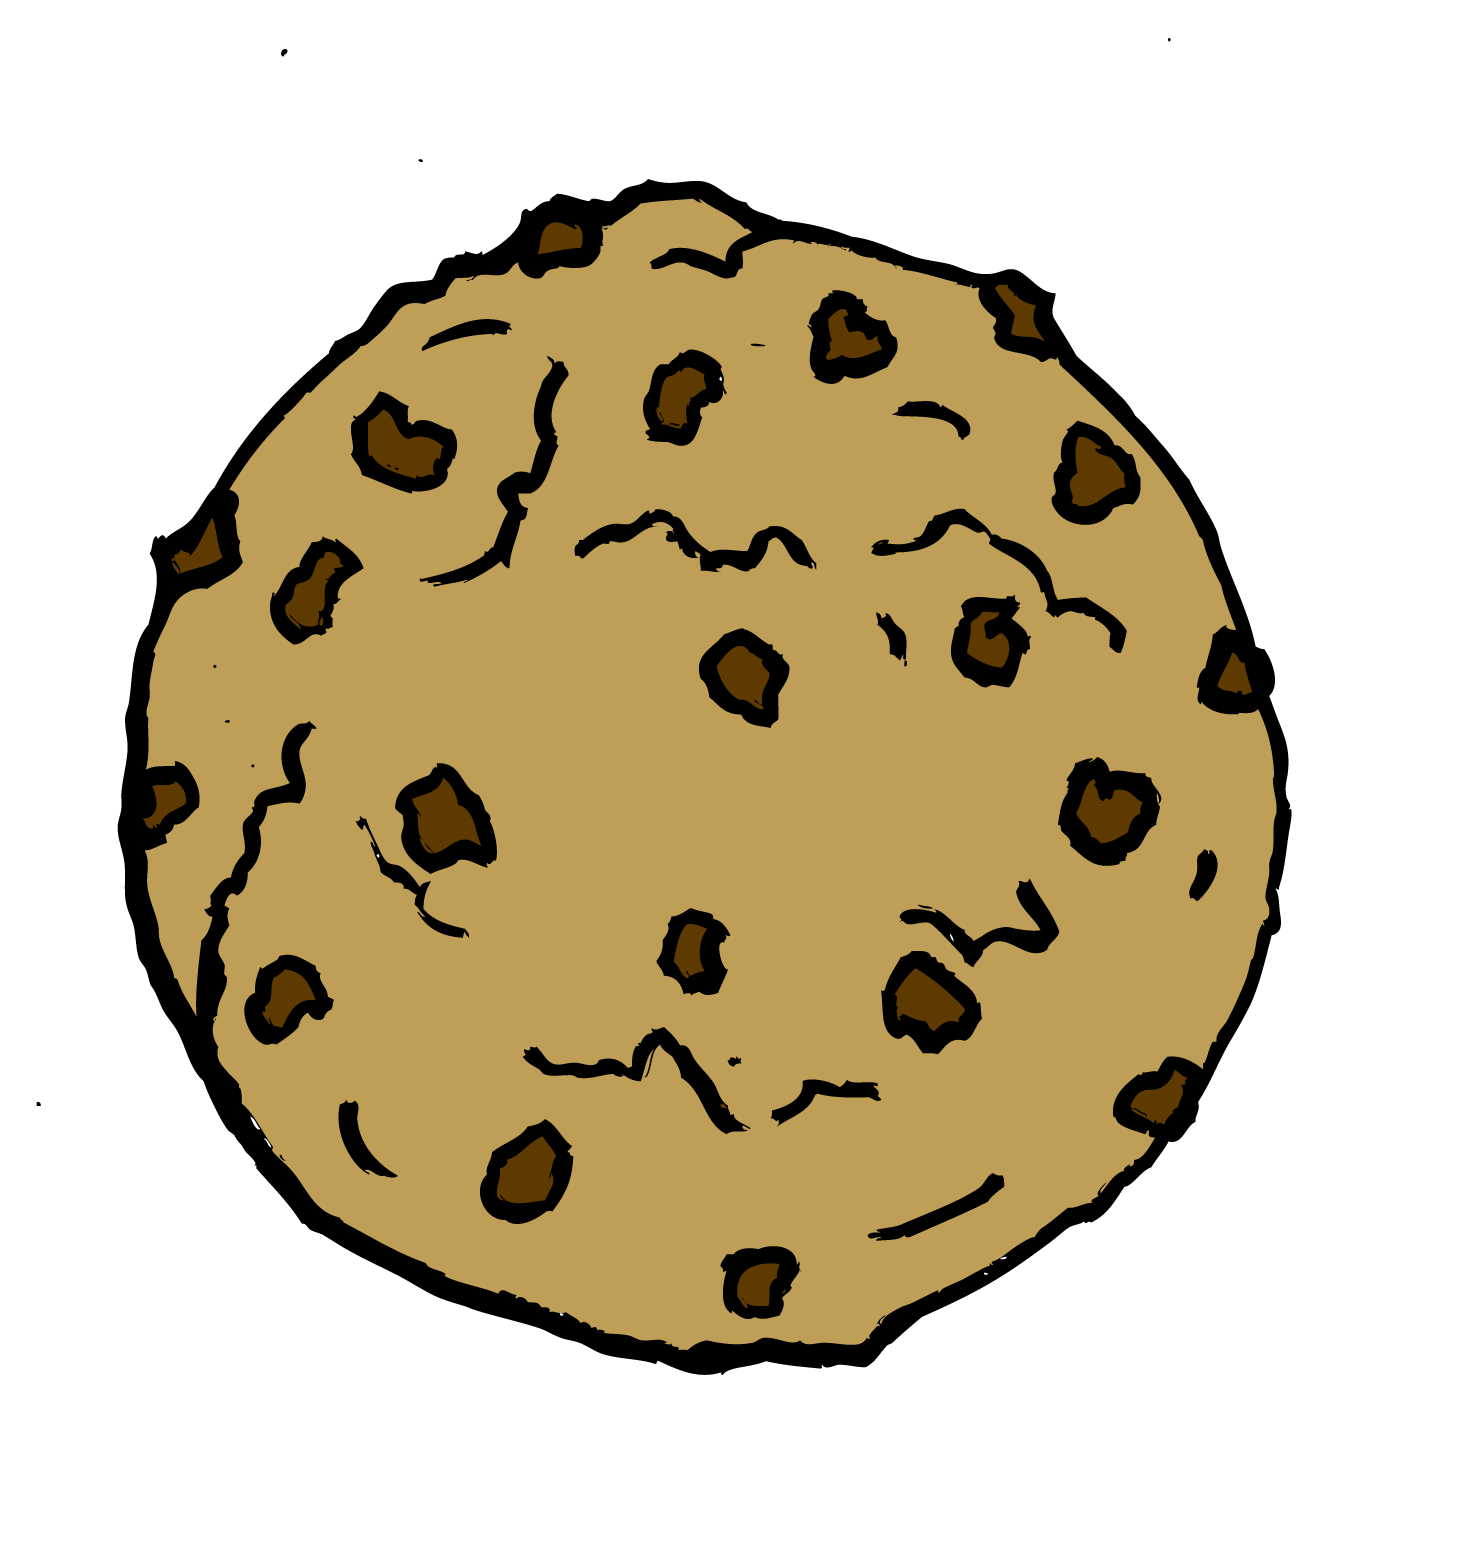 Clip Art Chocolate Chip Cookie Clip Art chocolate chip cookie clipart kid cookies and milk panda free images